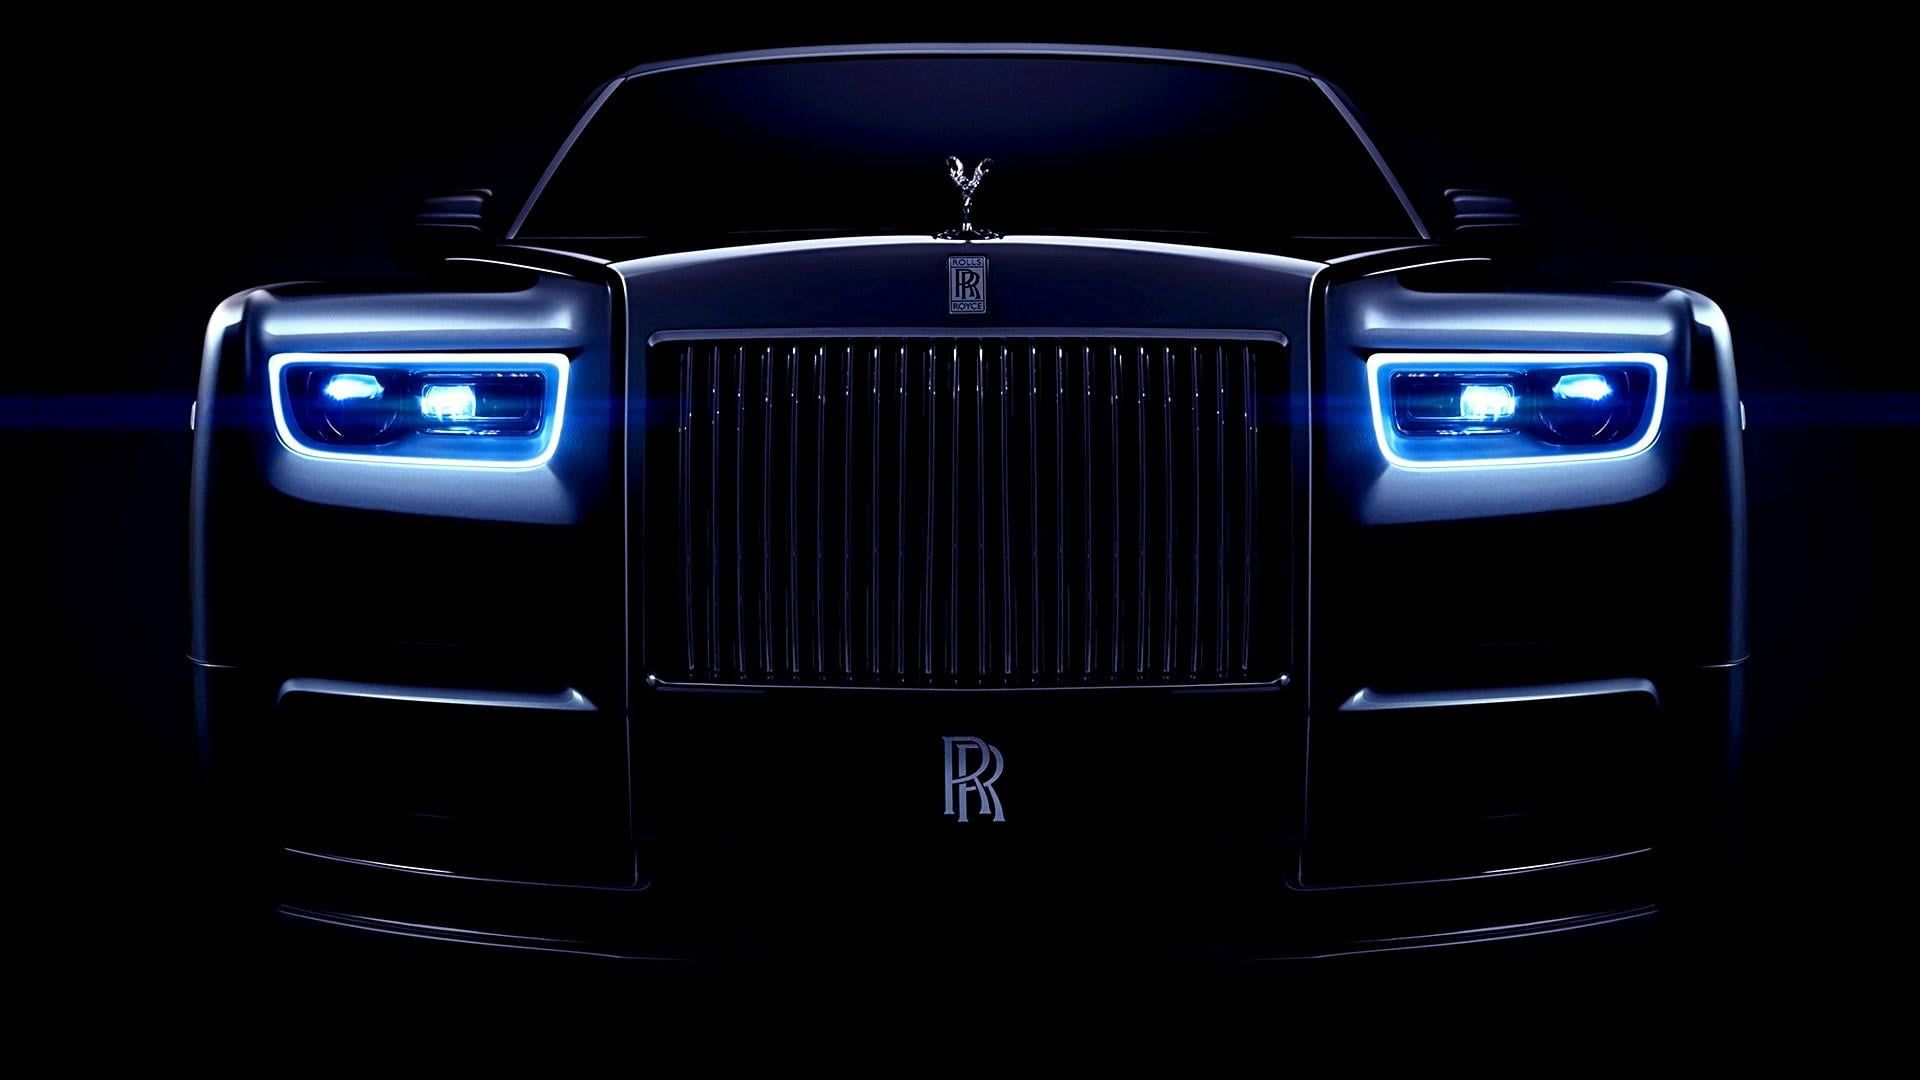 Blue Light Vehicle Dark Rolls Royce Luxury Car Rolls Royce Phantom 1080p Wallpaper Hdwallpaper Rolls Royce Rolls Royce Motor Cars Luxury Cars Rolls Royce